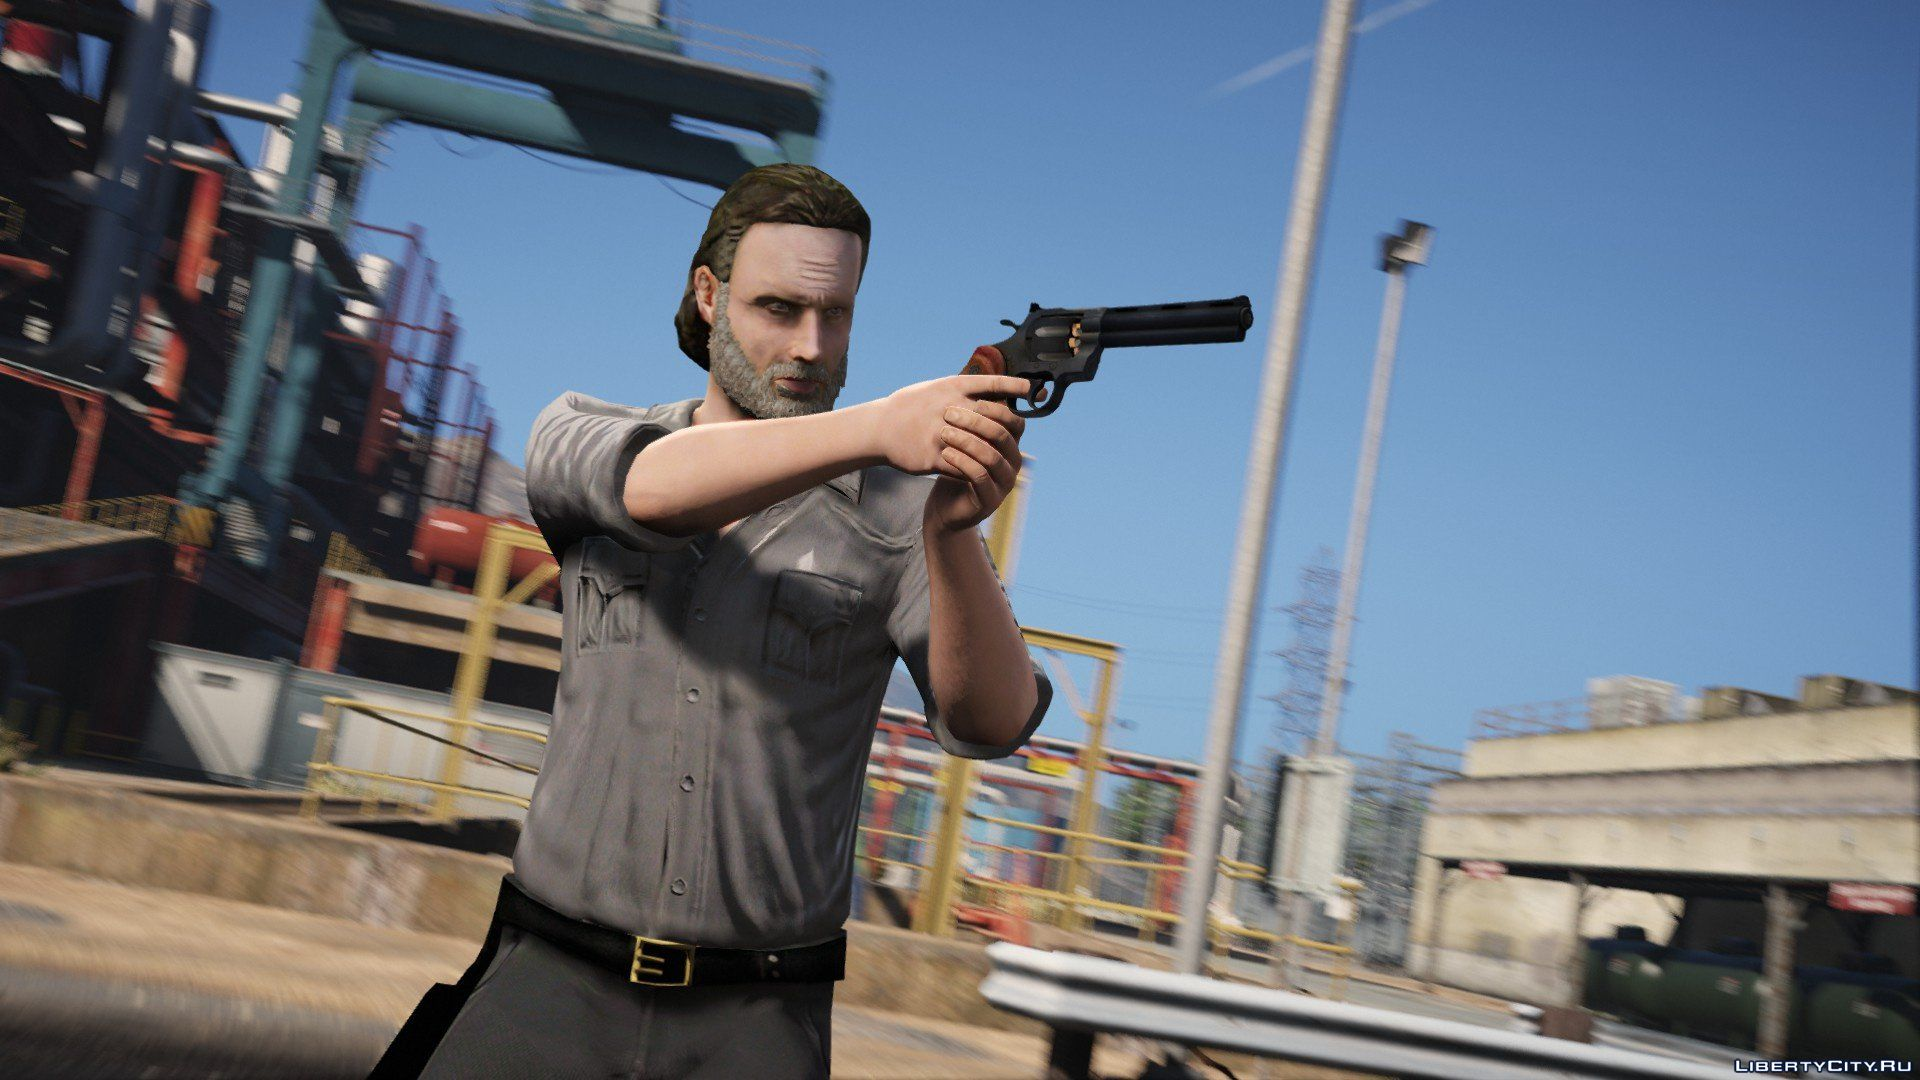 The Walking Dead - Rick Grimes [Ped Model] 6 0 for GTA 5